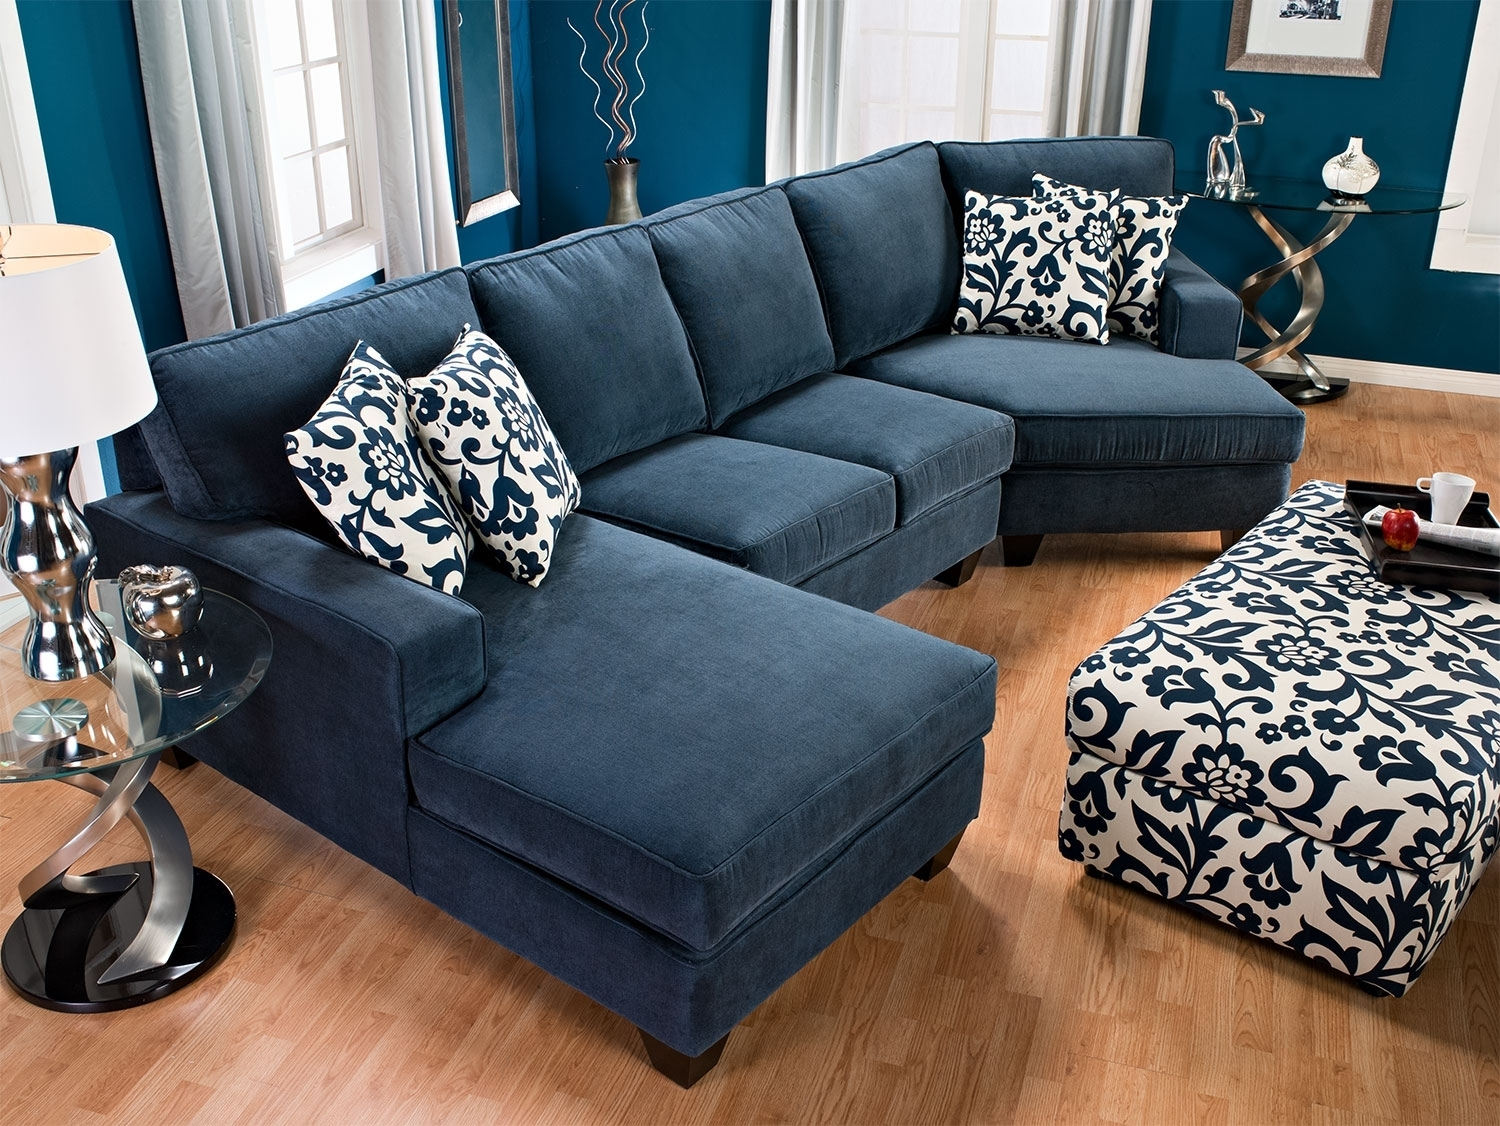 Chenille Sectional Sofa With Chaise | Www.allaboutyouth within Sectional Sofas At Brick (Image 6 of 15)